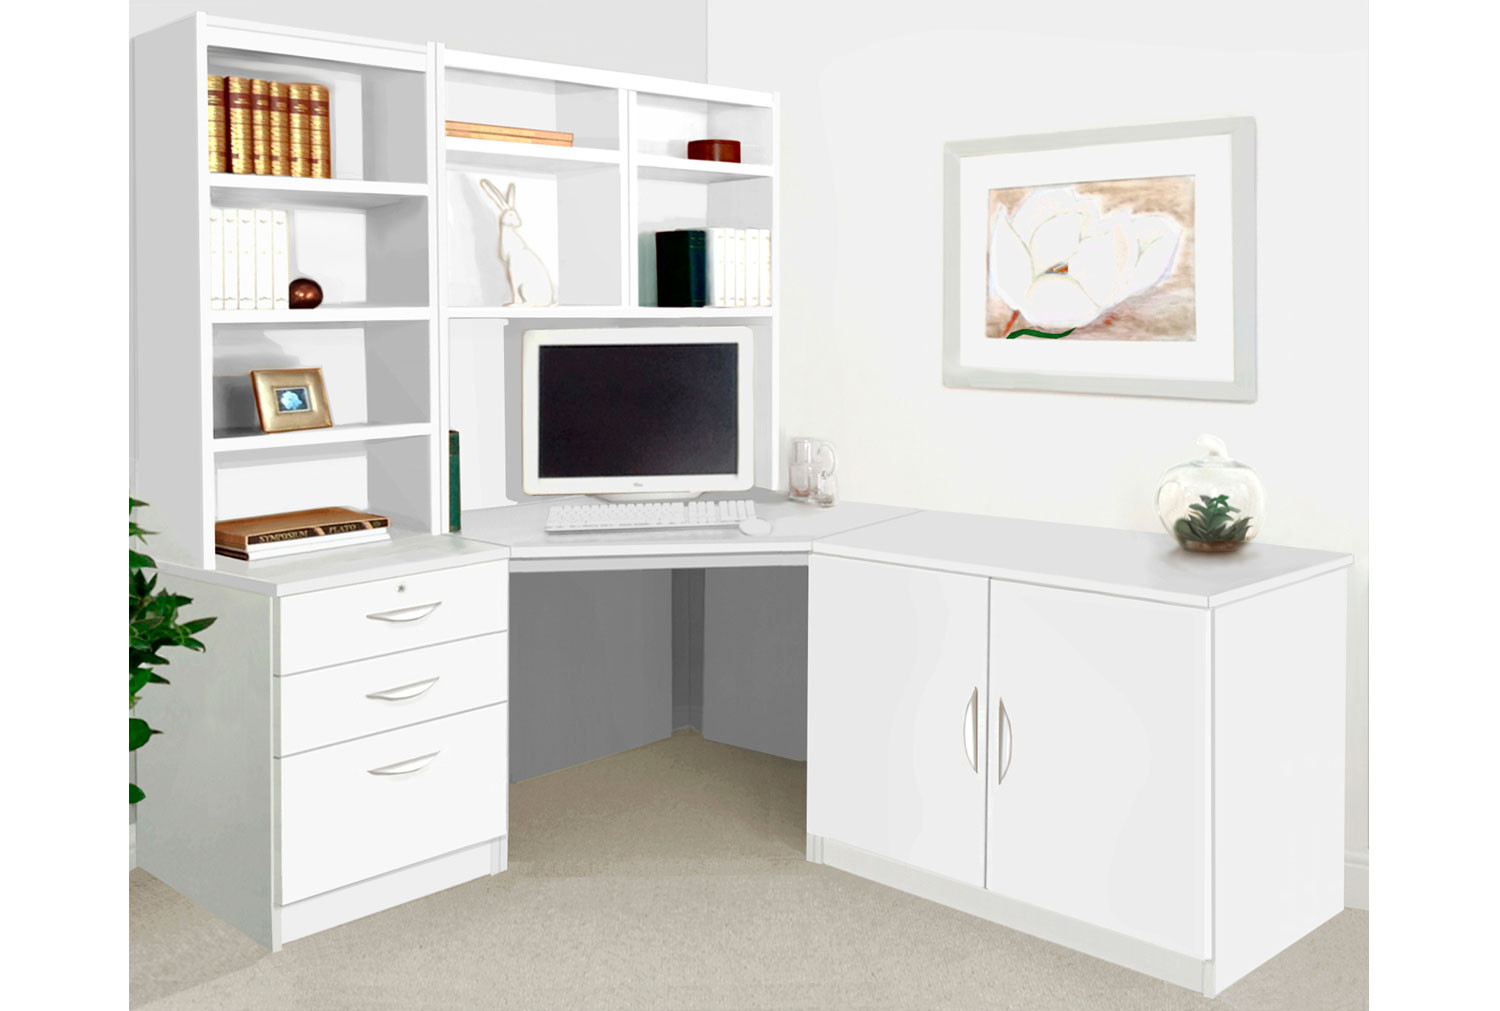 Small Office Corner Desk Set With 3 Drawers, Cupboard & Hutch Bookcases (White)